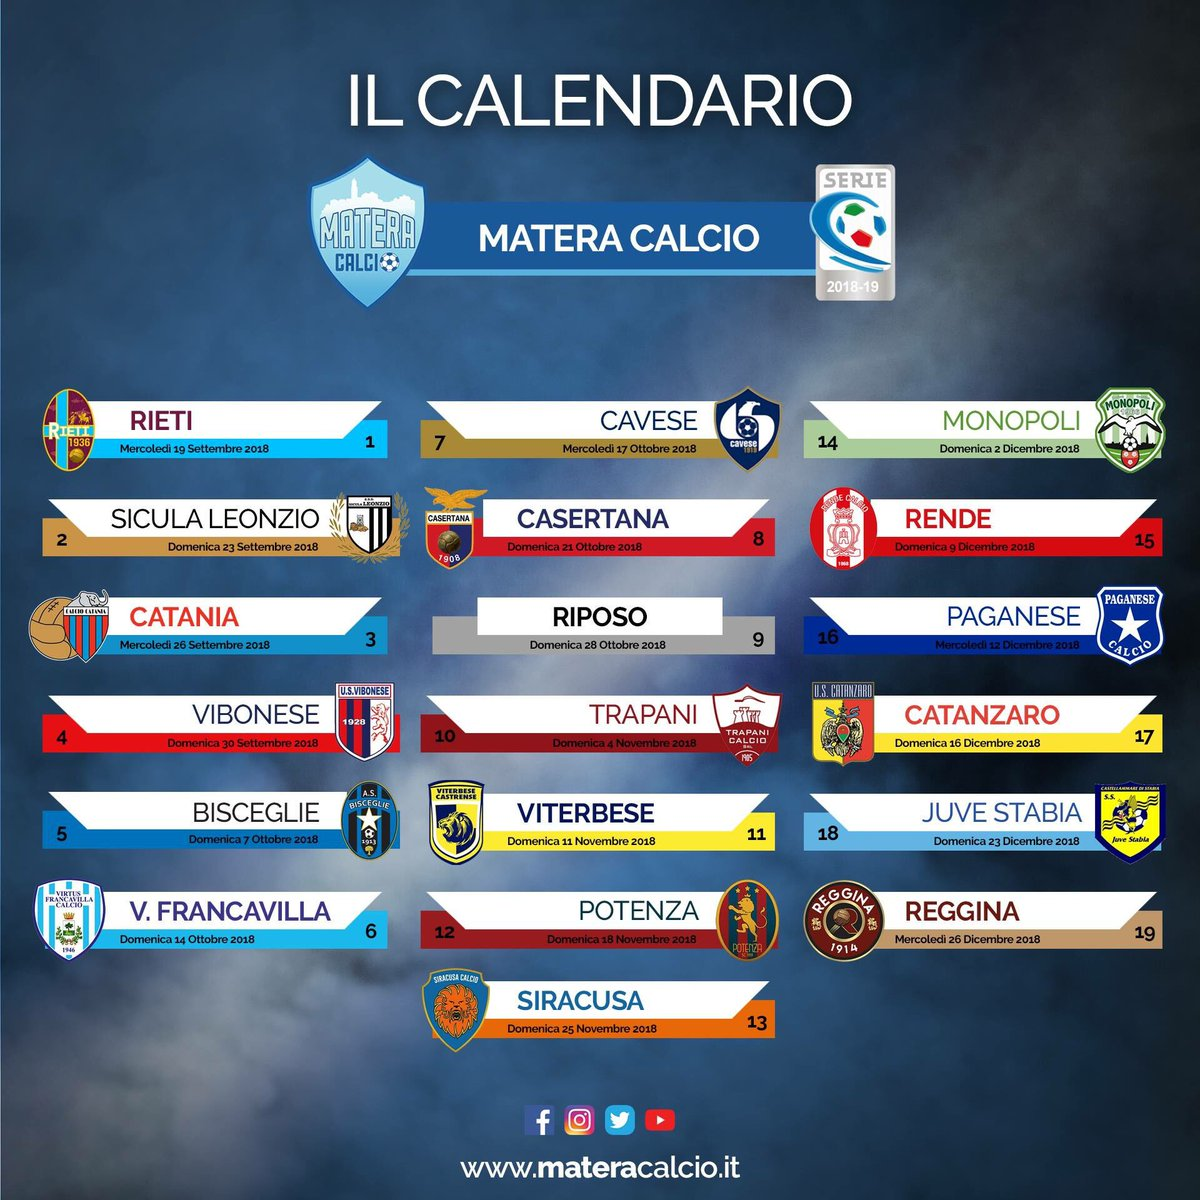 Matera Calcio Calendario.Matera Calcio Official On Twitter Calendario Ufficiale